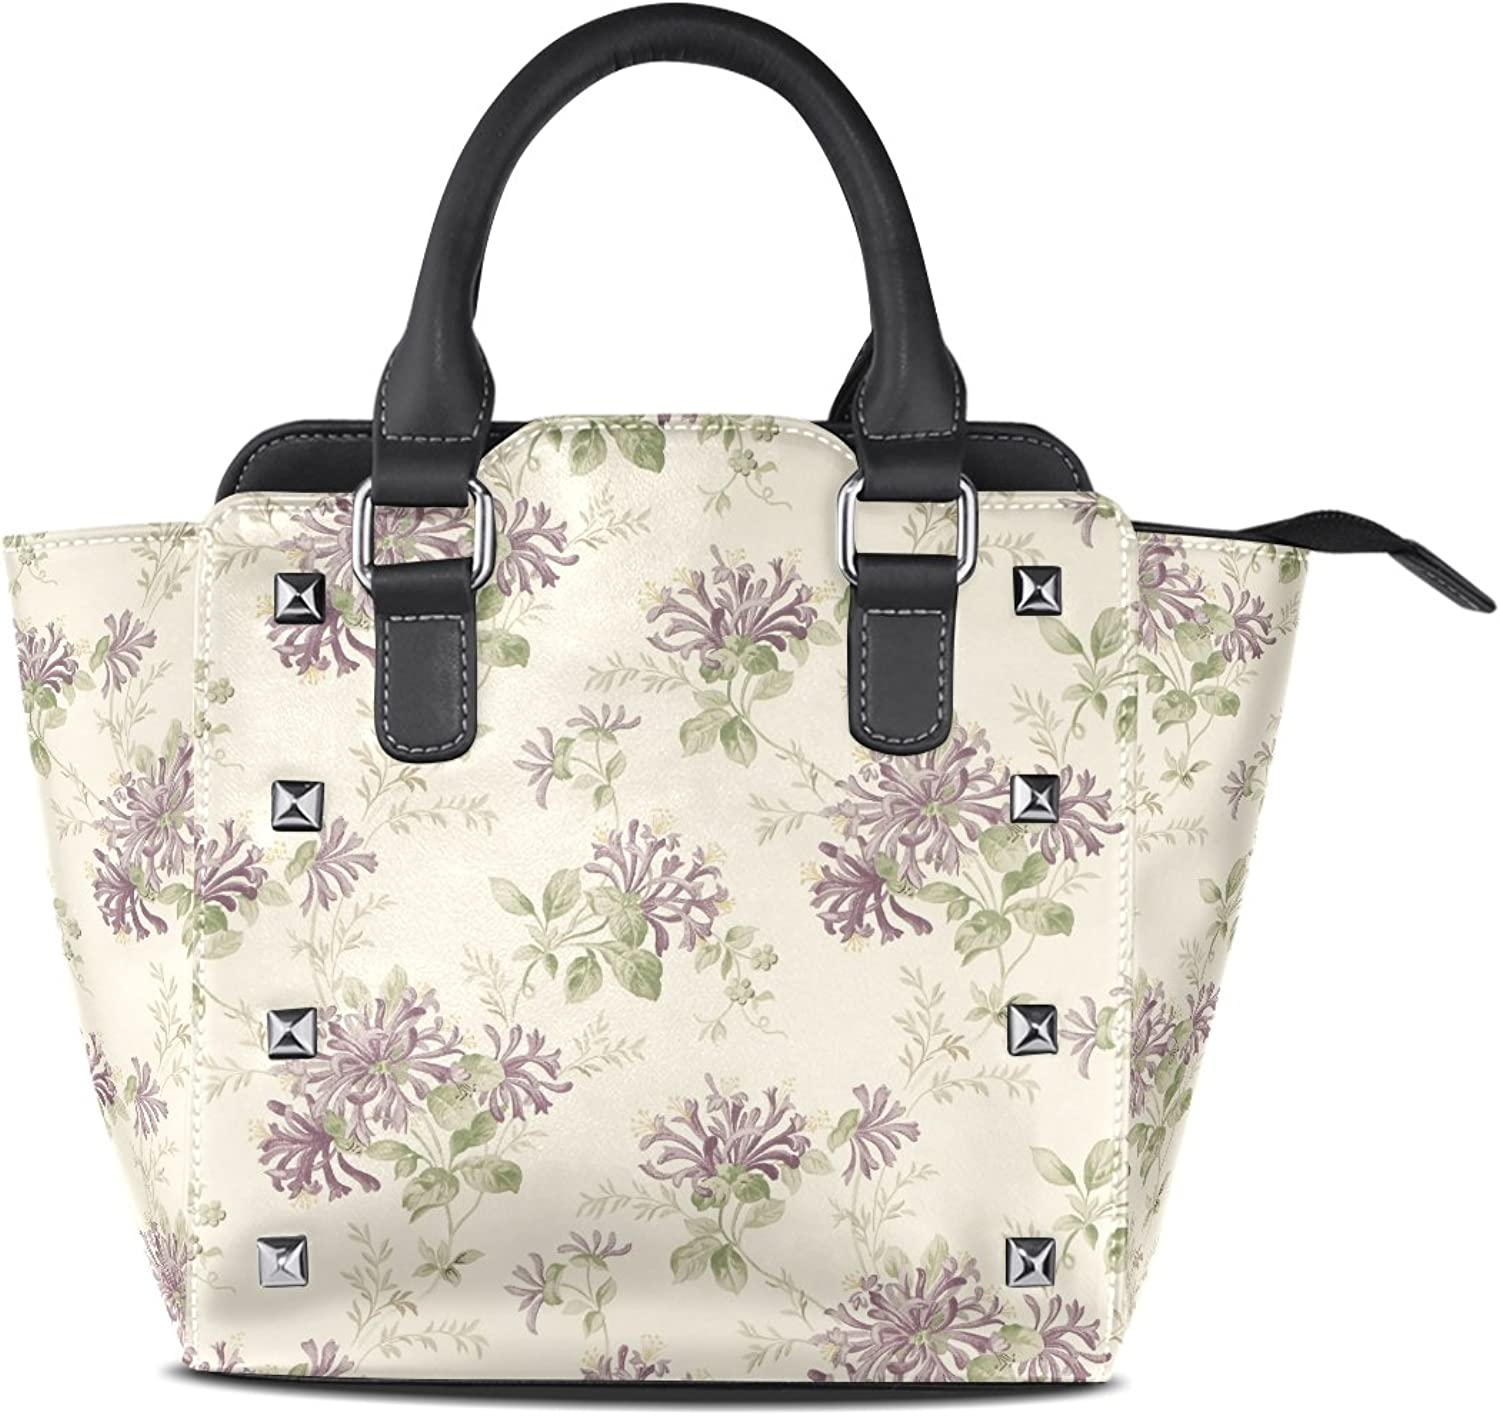 Sunlome Honeysuckle Trail Grape Floral Print Women's Leather Tote Shoulder Bags Handbags